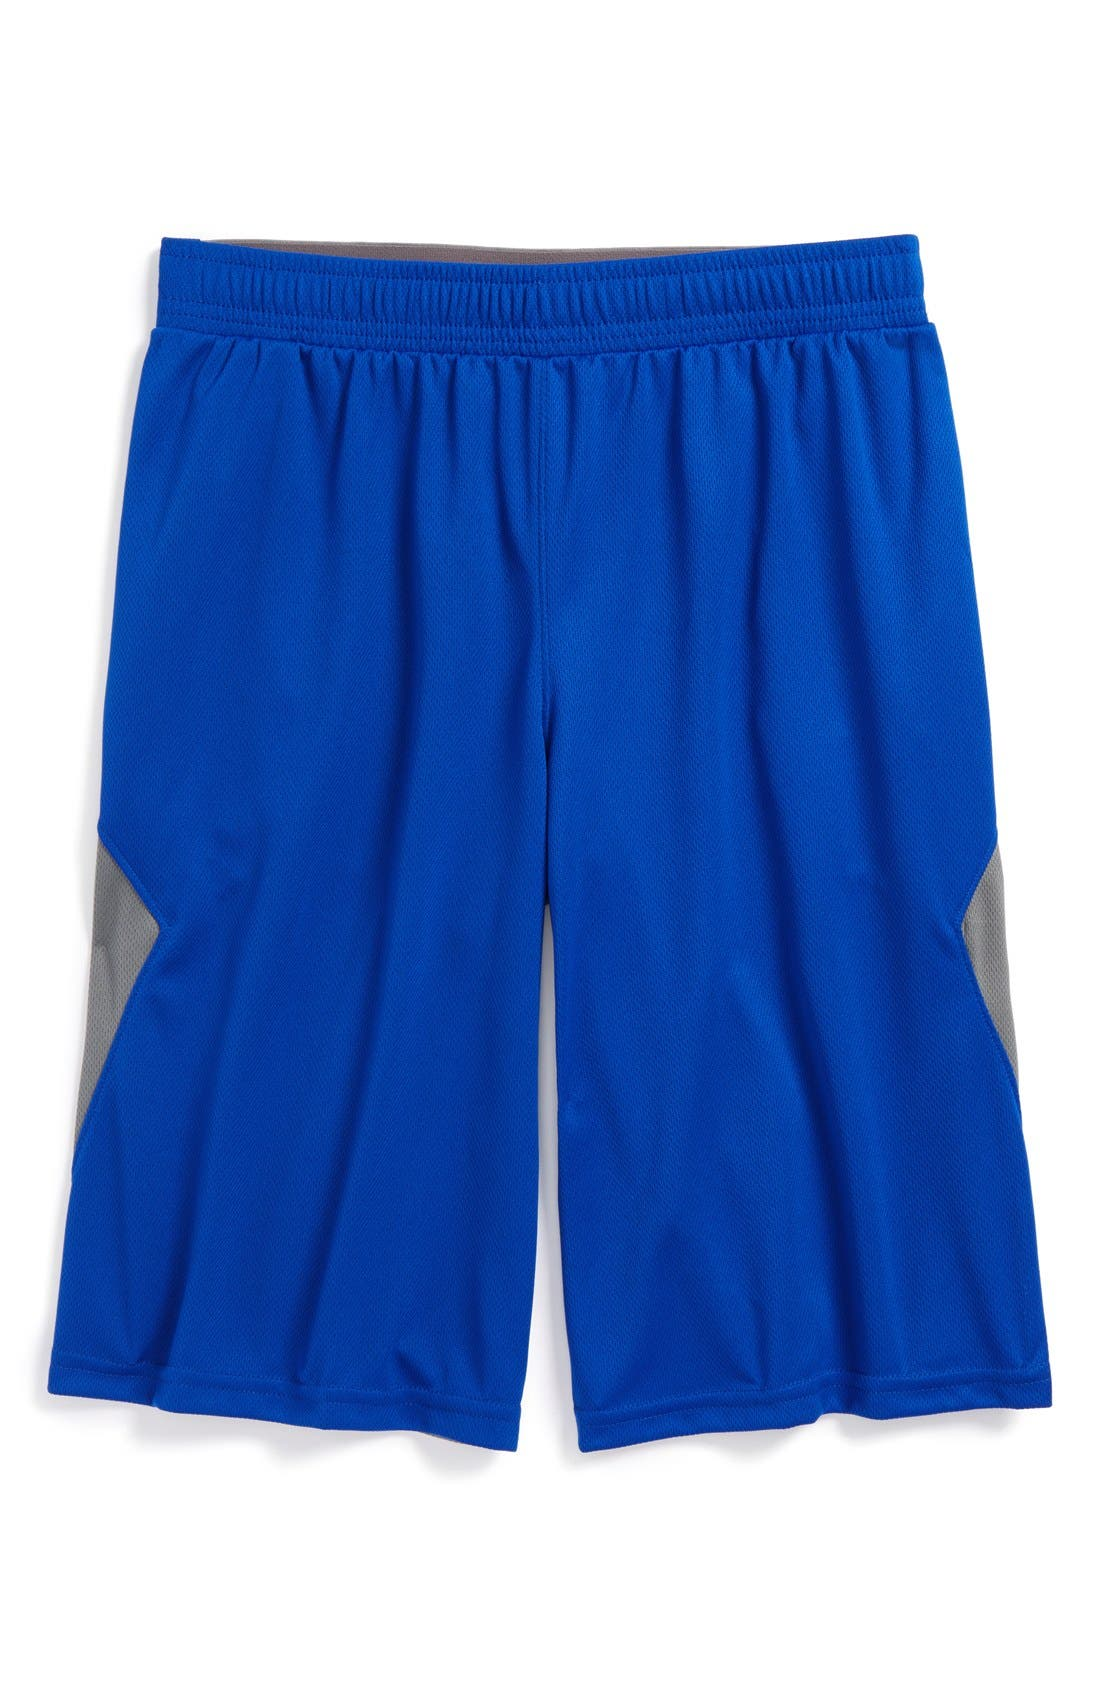 Alternate Image 1 Selected - Under Armour 'From Downtown' HeatGear® Shorts (Big Boys)